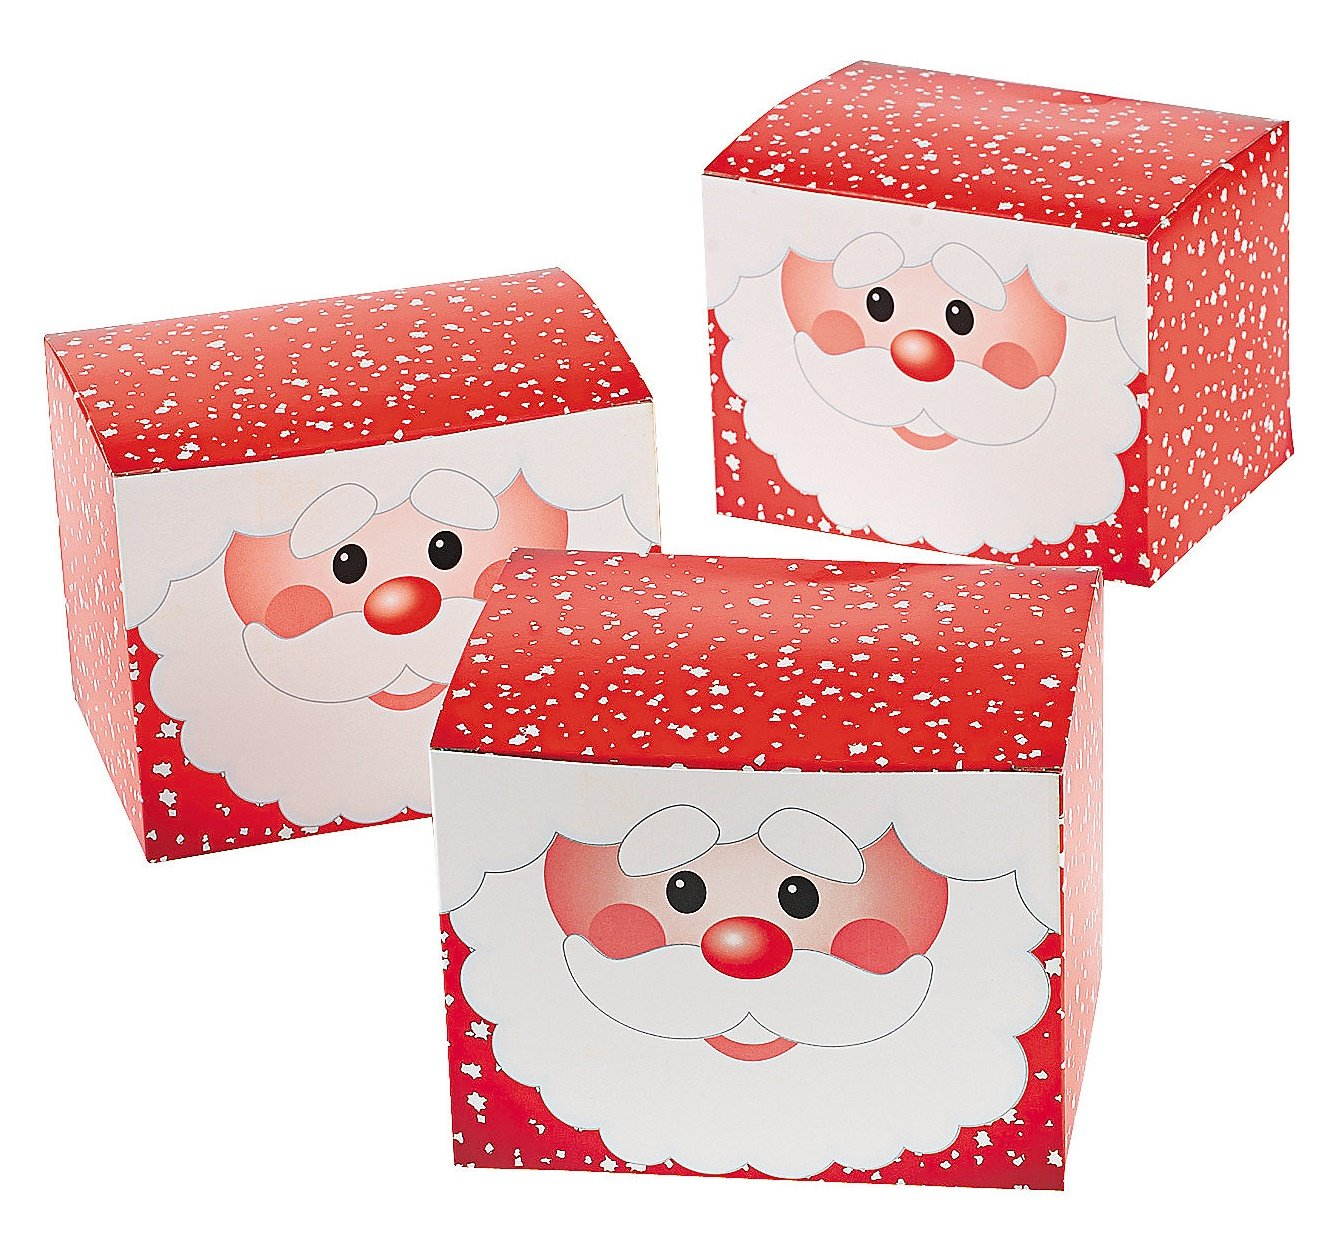 SANTA GIFT BOX - Party Supplies - 12 Pieces